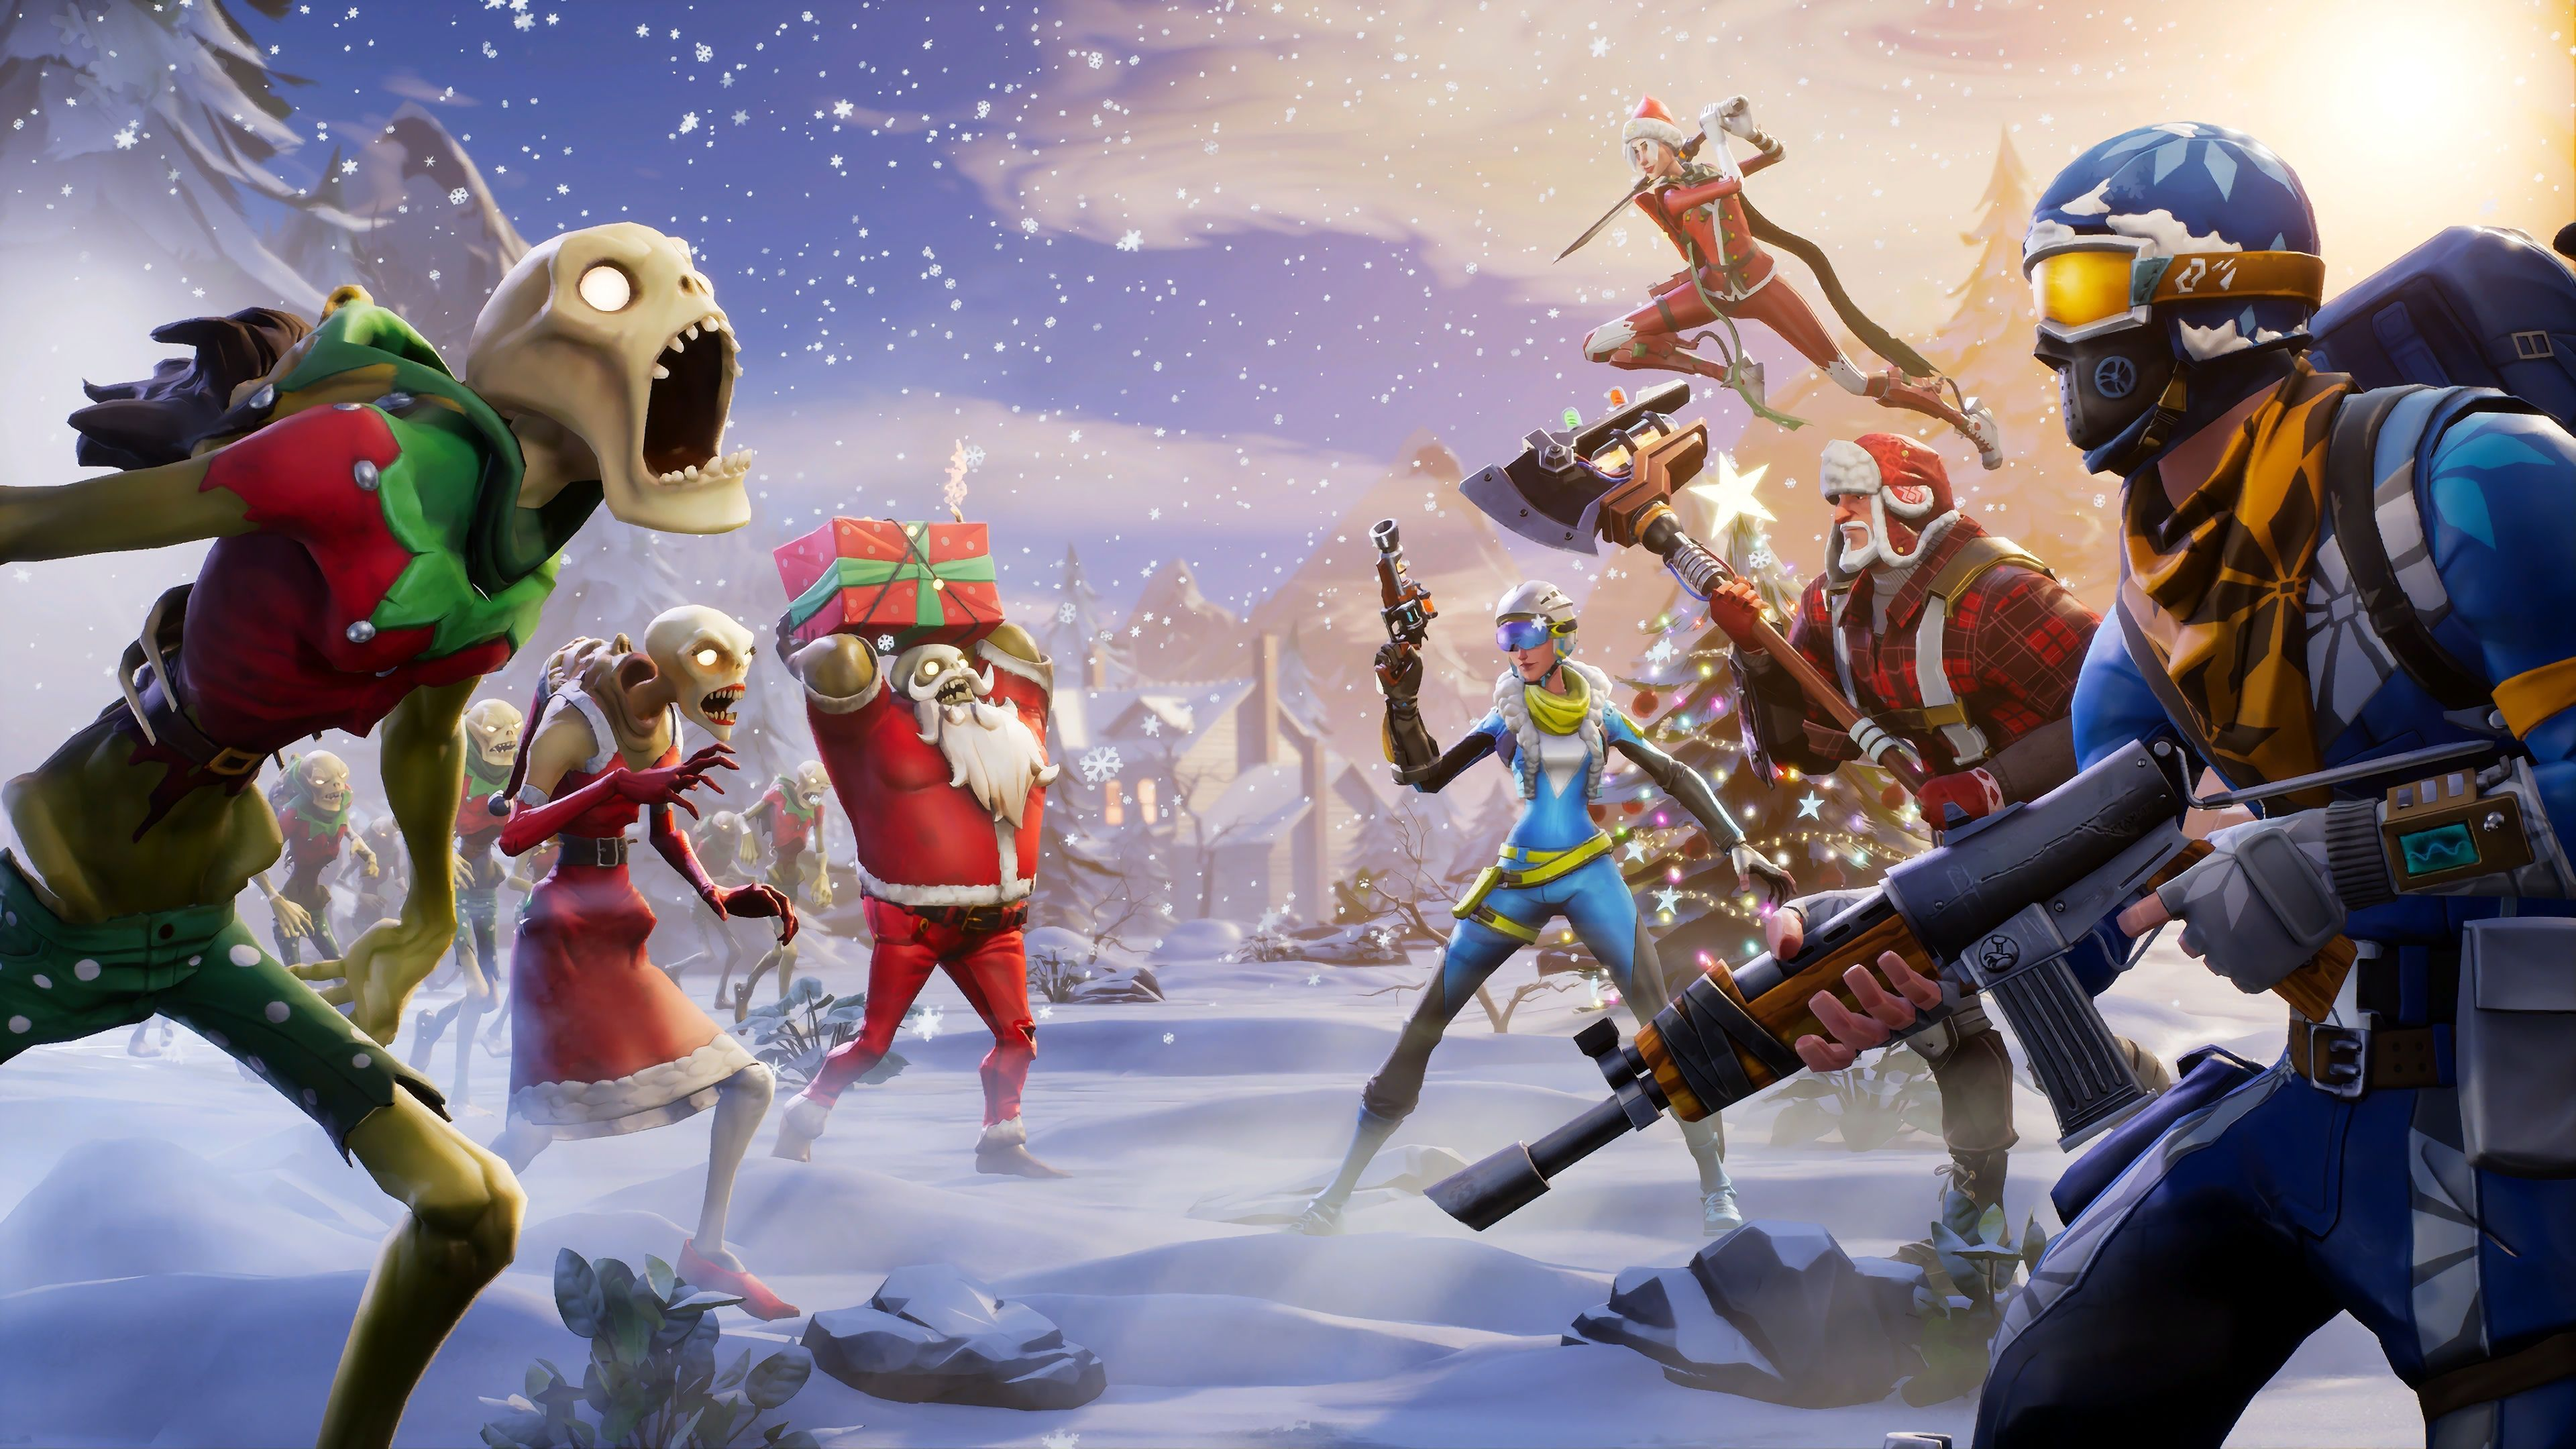 Fortnite Christmas Desktop Wallpapers   Top Fortnite 3840x2160